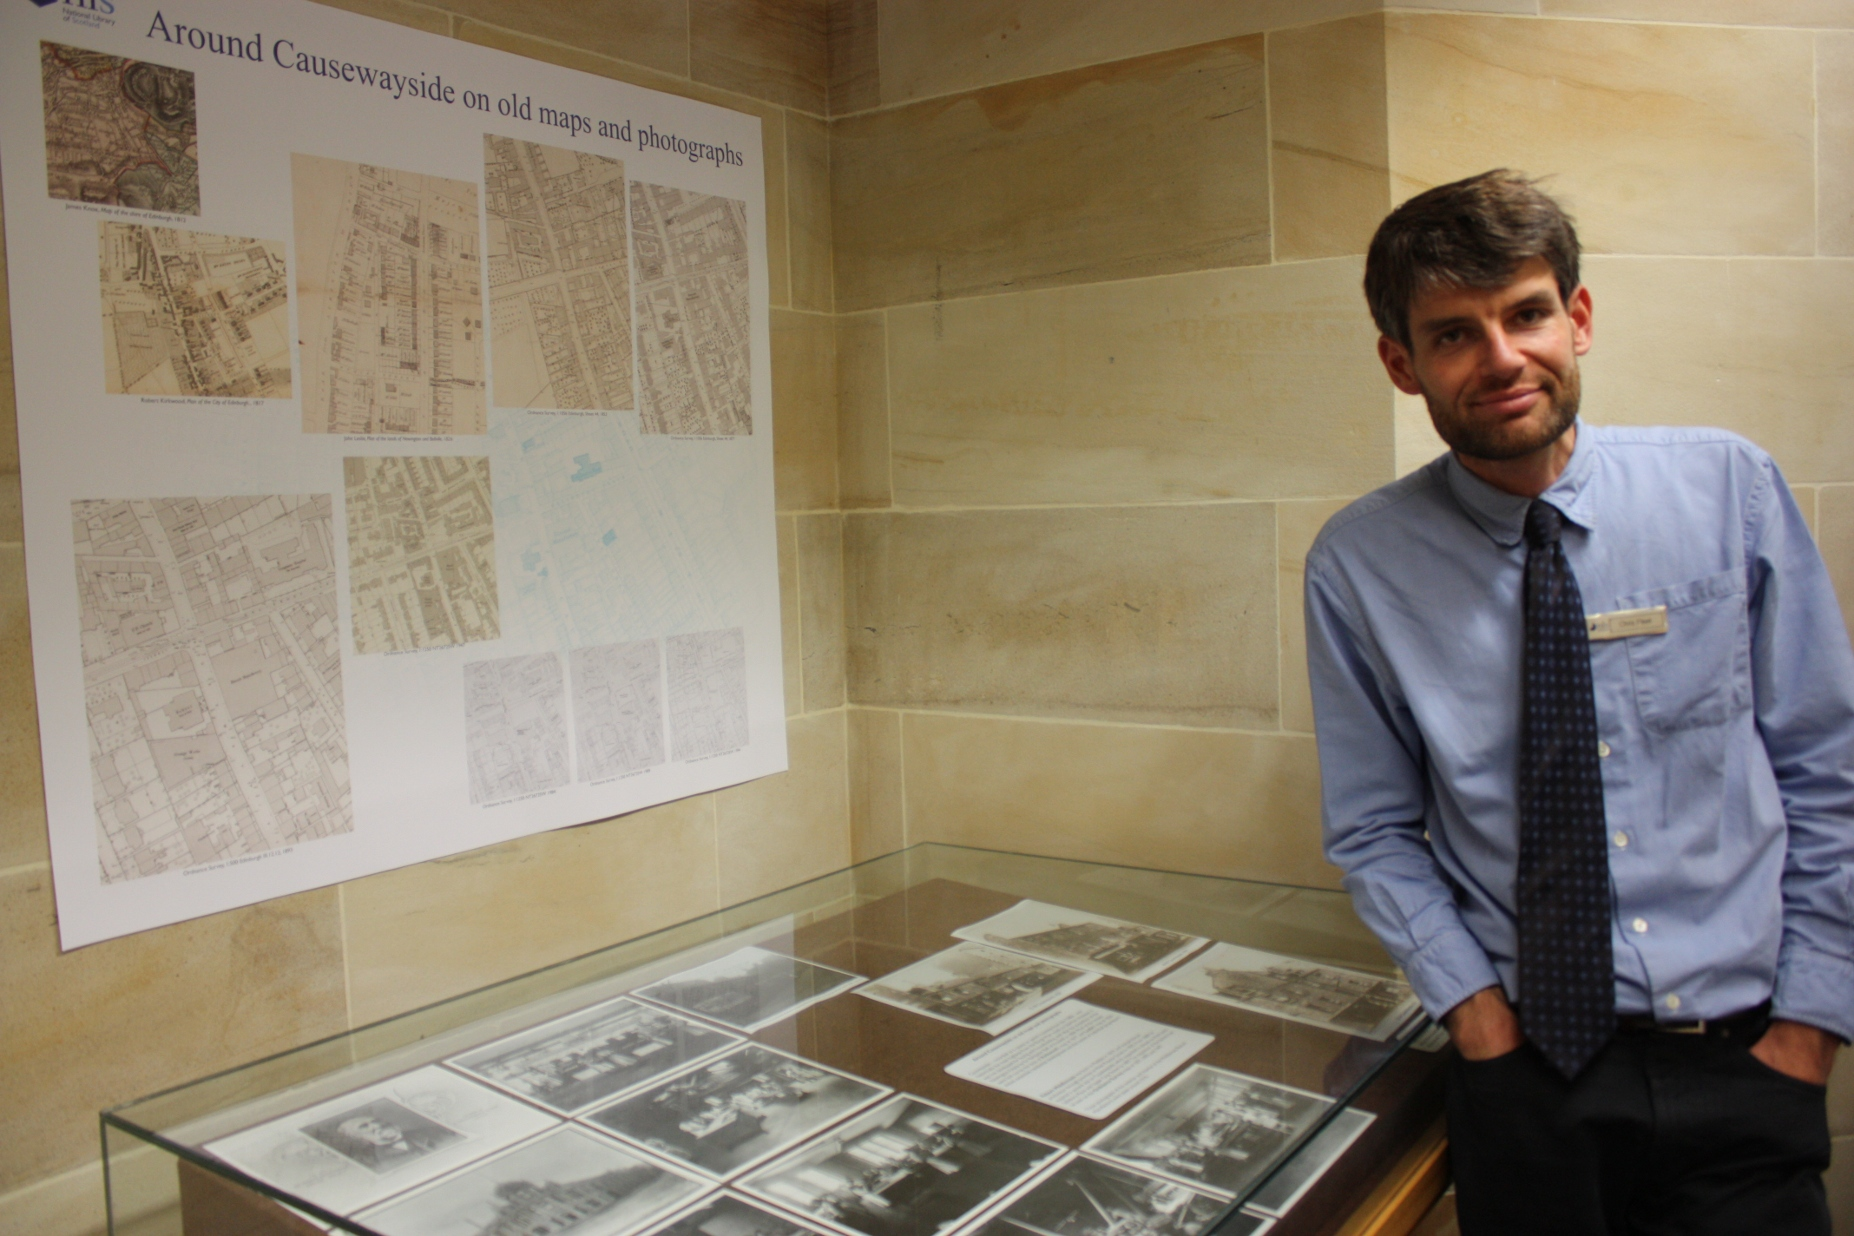 Chris Fleet stands next to part of the Causewayside in Old Maps and Images exhibit at the National Library of Scotland Maps Reading Room